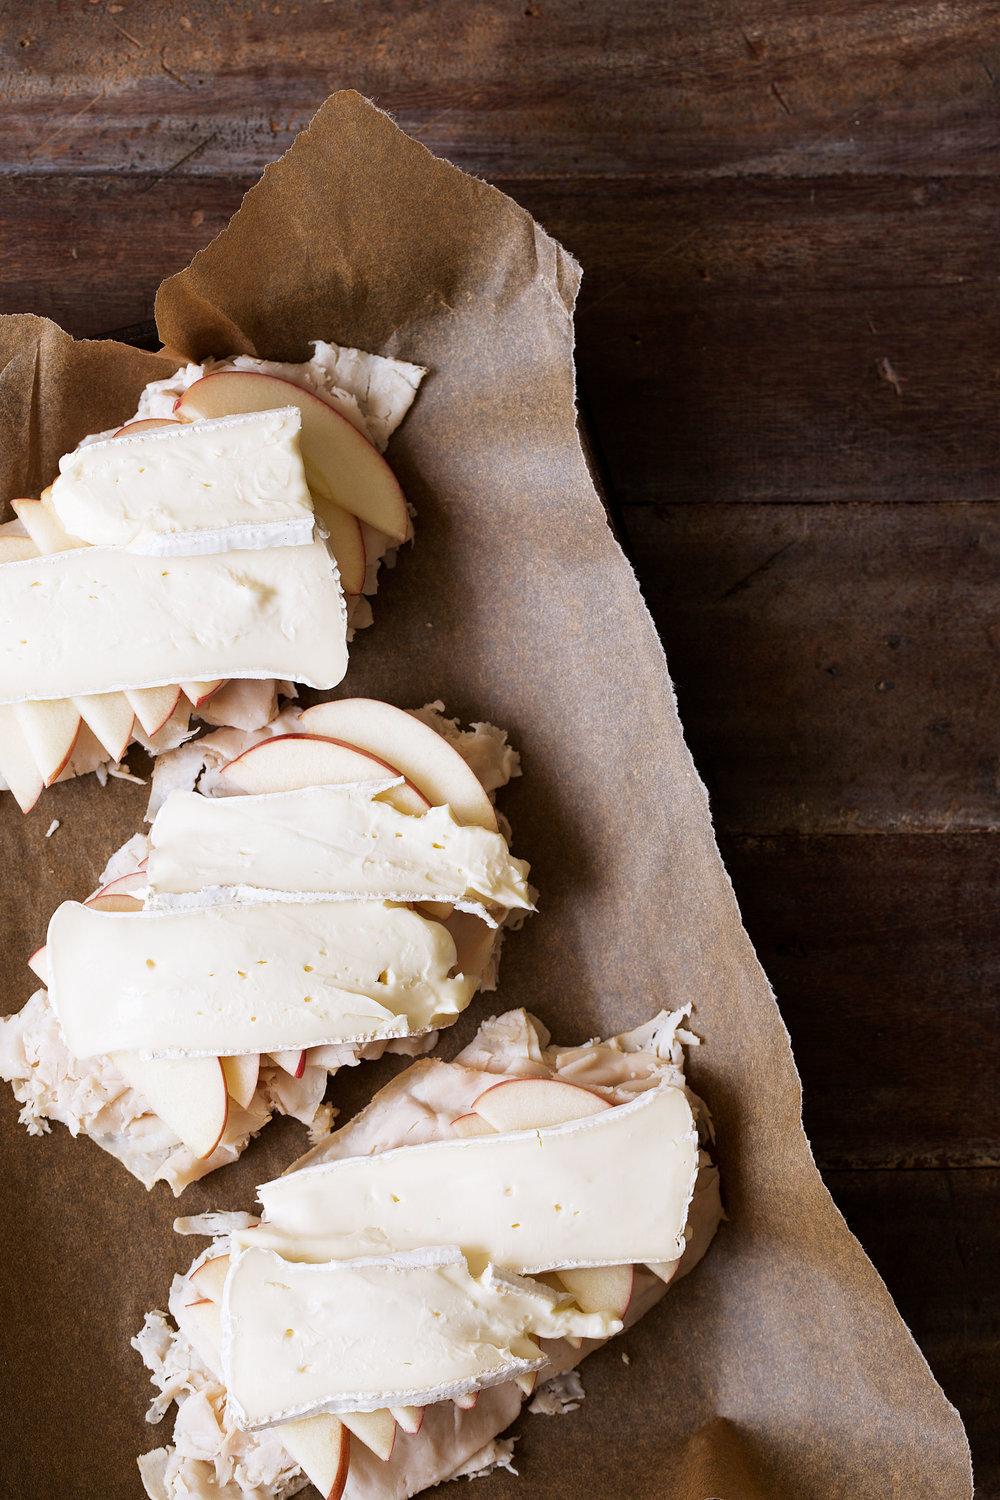 Turkey-Apple-Brie Open-face Sandwich layers for broil